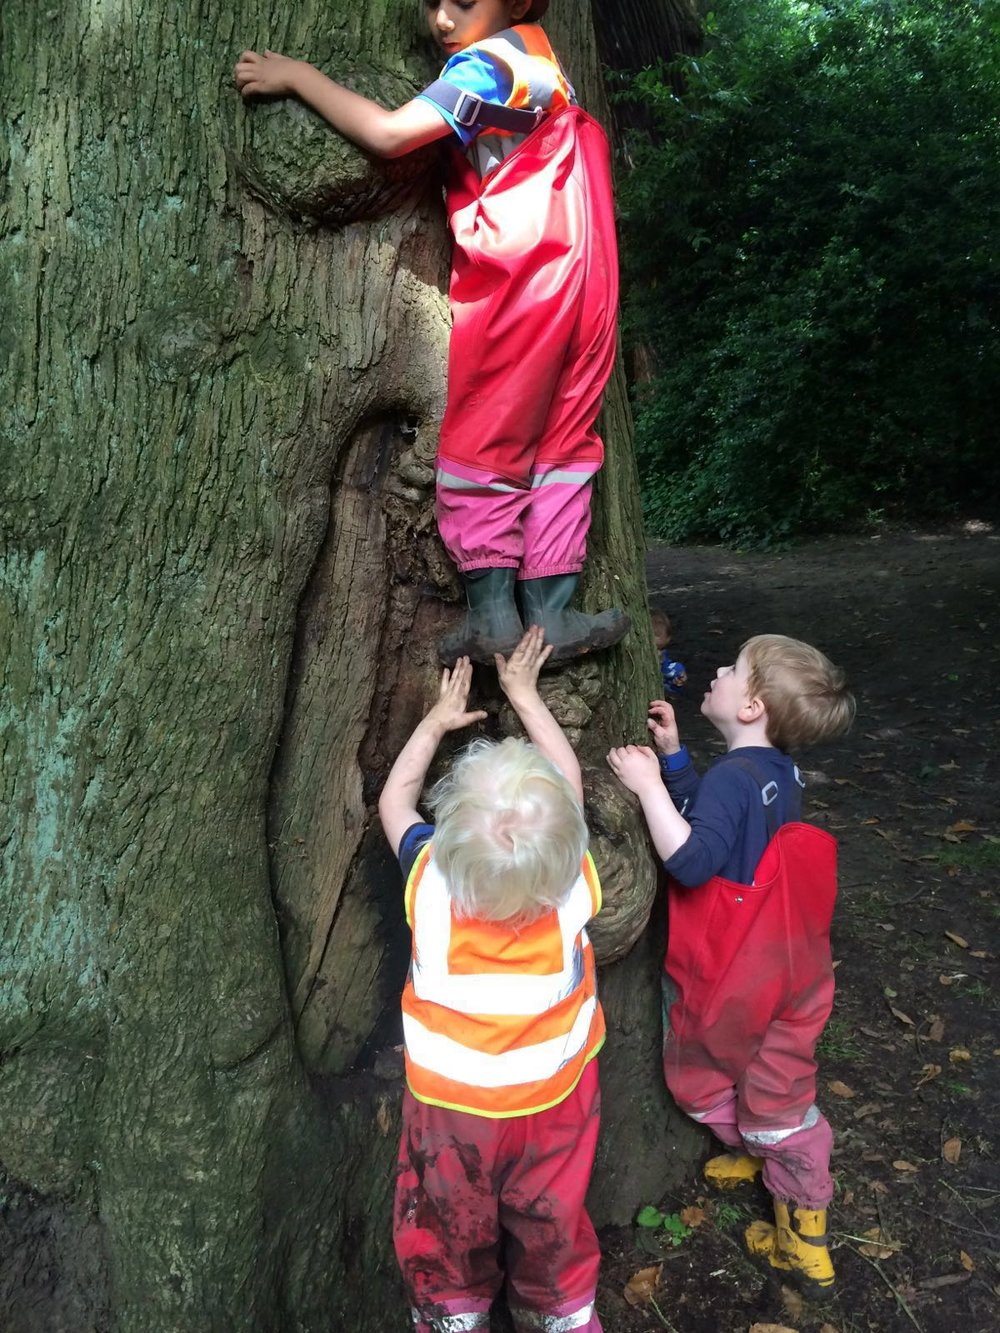 A group of 2-3 year olds motivate each other to climb to the top of a tree